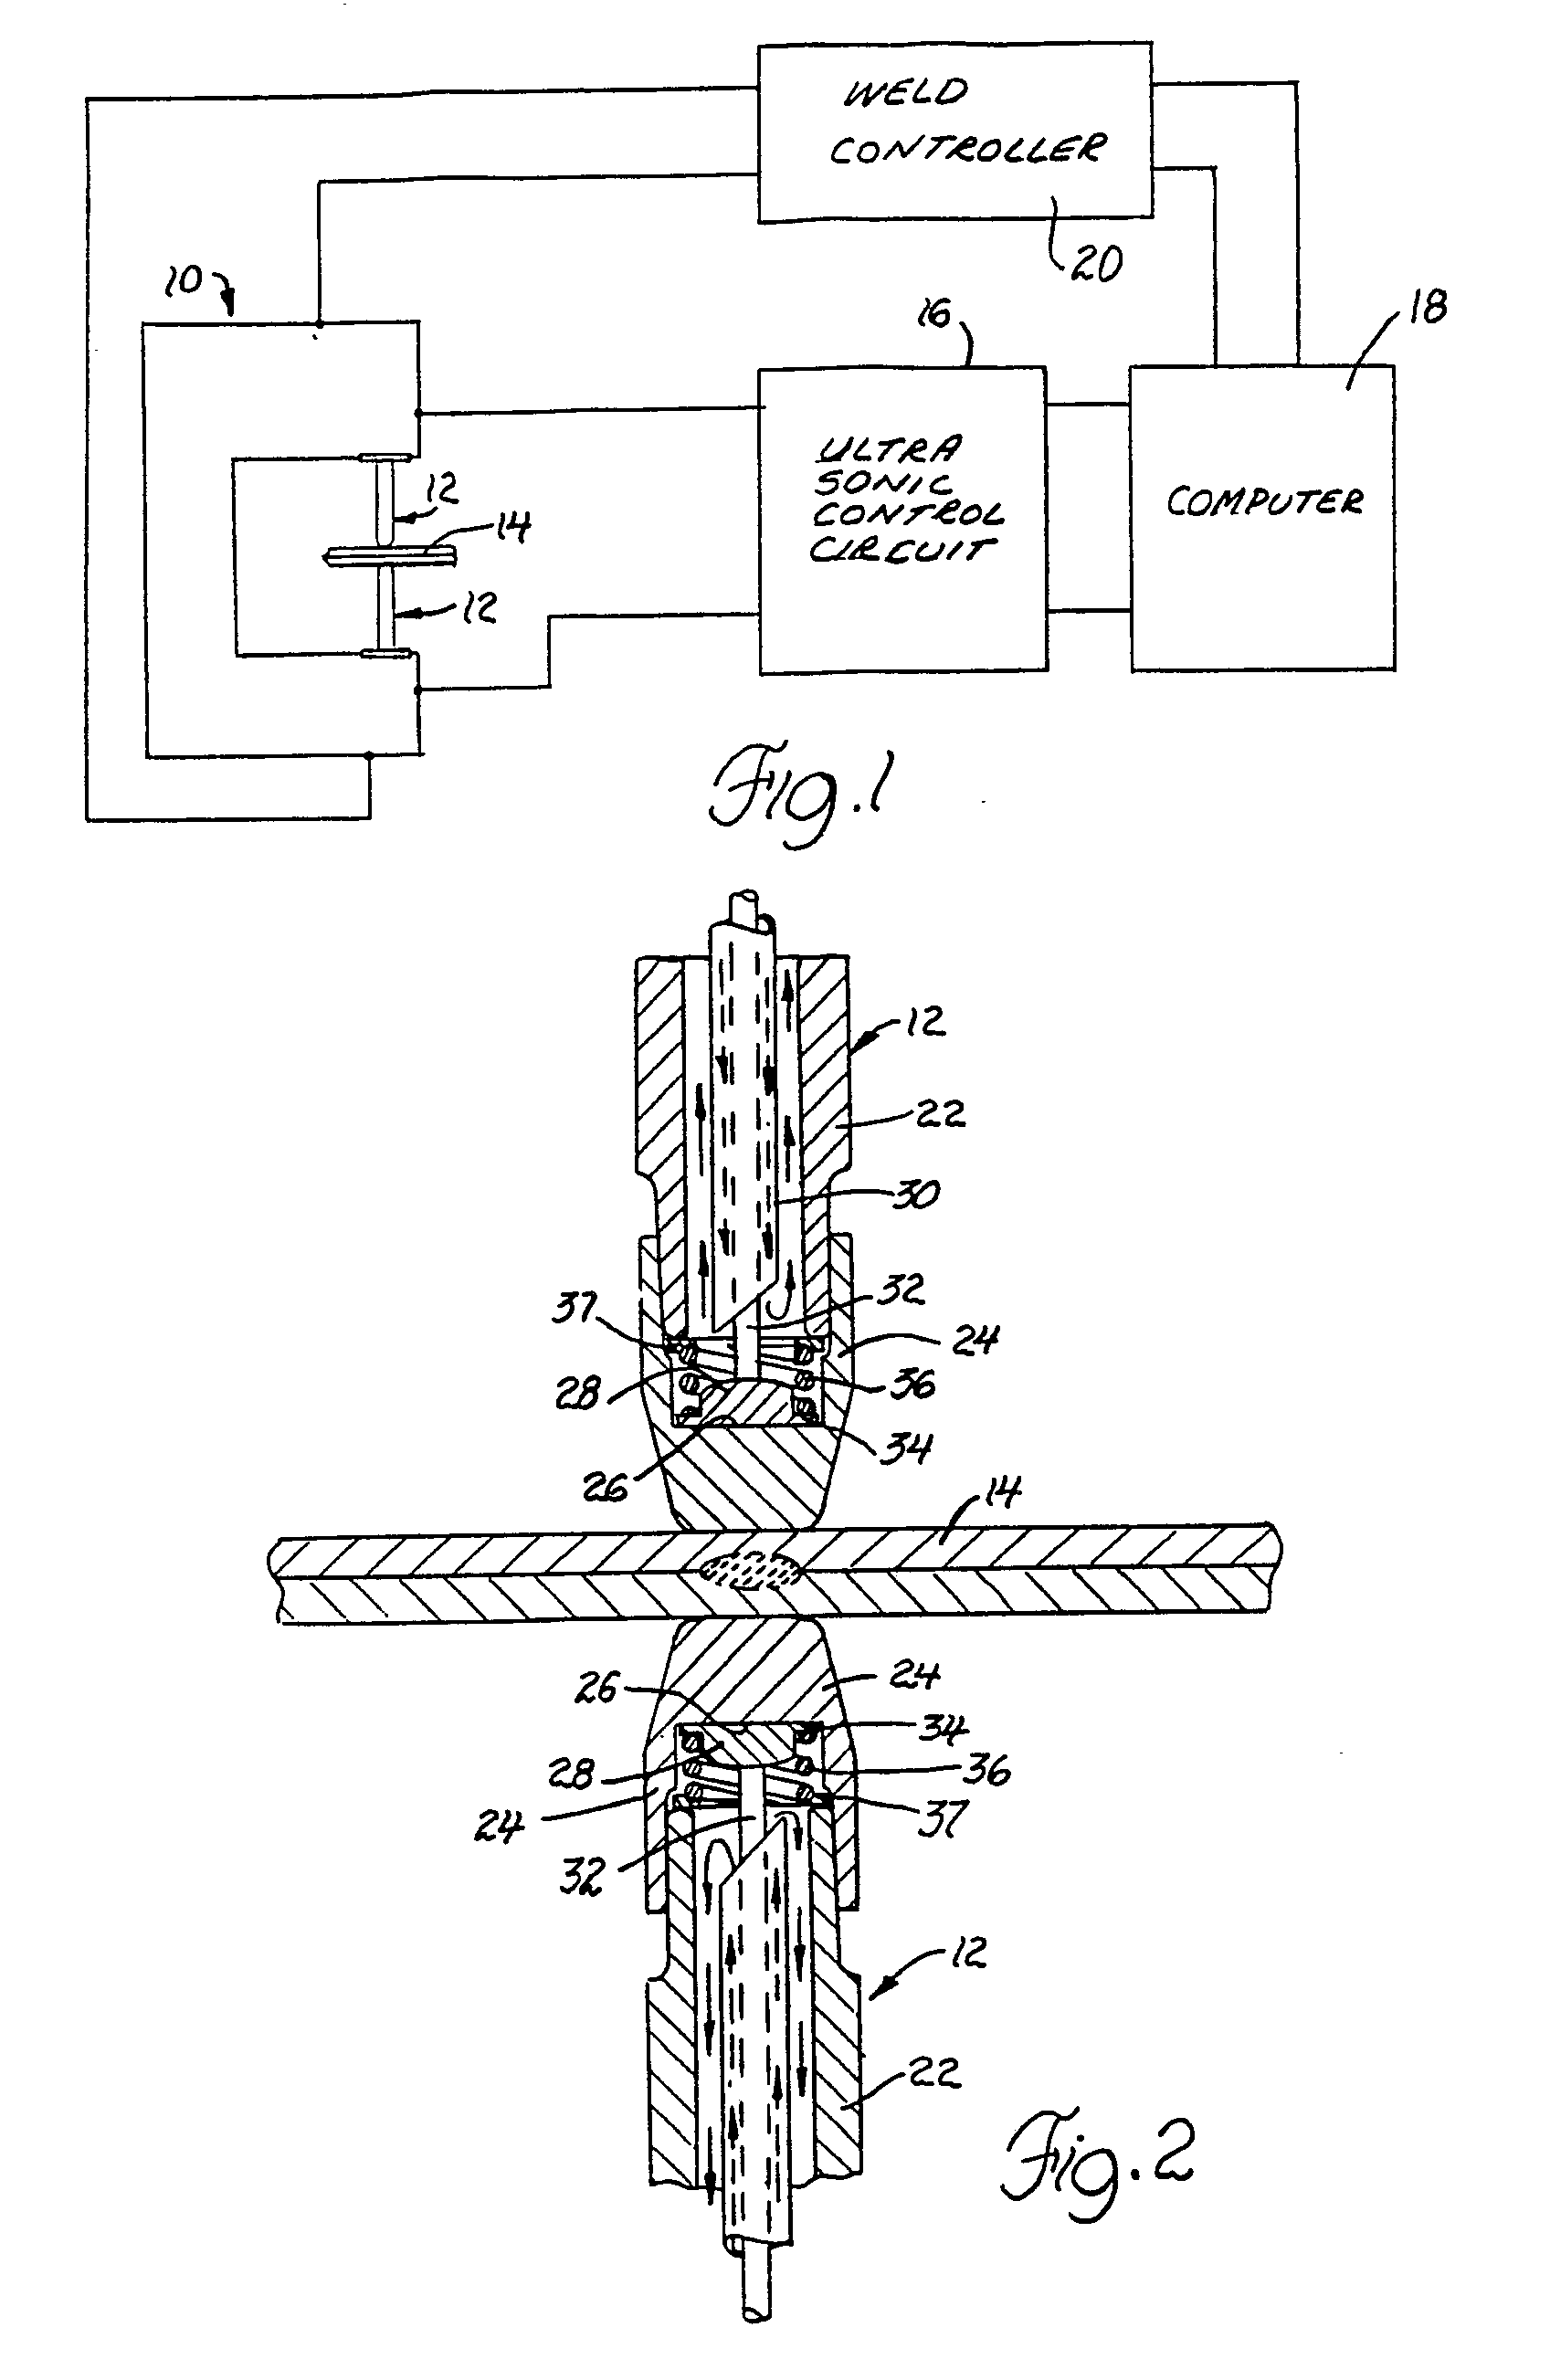 Patent Ep0284177b1 Method And Apparatus For Spot Weld Control Welding Schematic Diagram Drawing